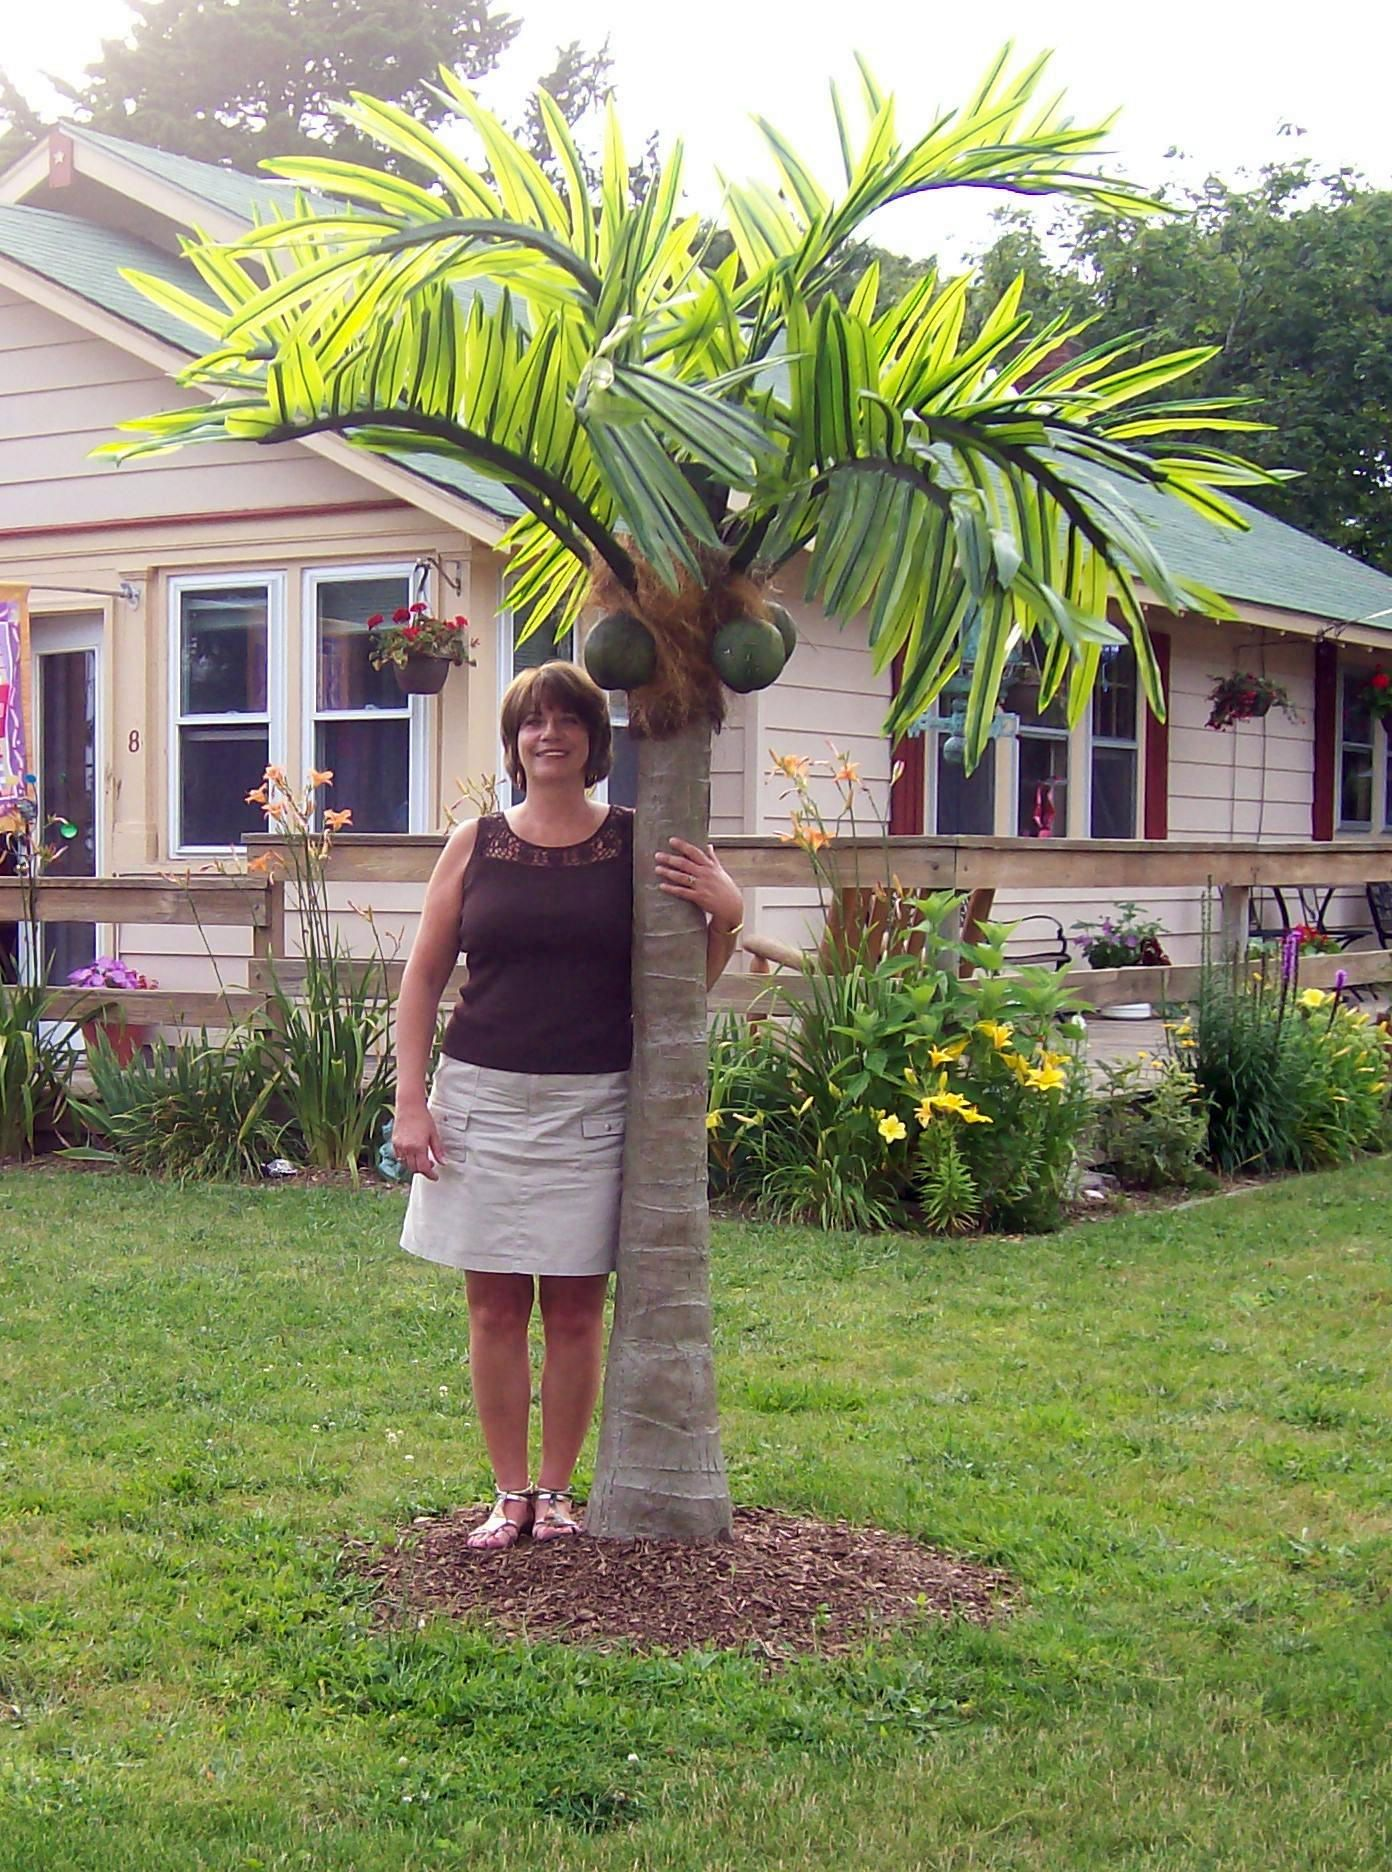 Enhance your surroundings with a Beautiful LED Lighted Palm Tree! Tree looks real and the fronds blow in the wind. Great for your backyard oasis or any business wanting to attract attention. See our Happy Customers in the Palm Tree Gallery at www.MyOutdoorConn... Lory......The Palm Tree Lady